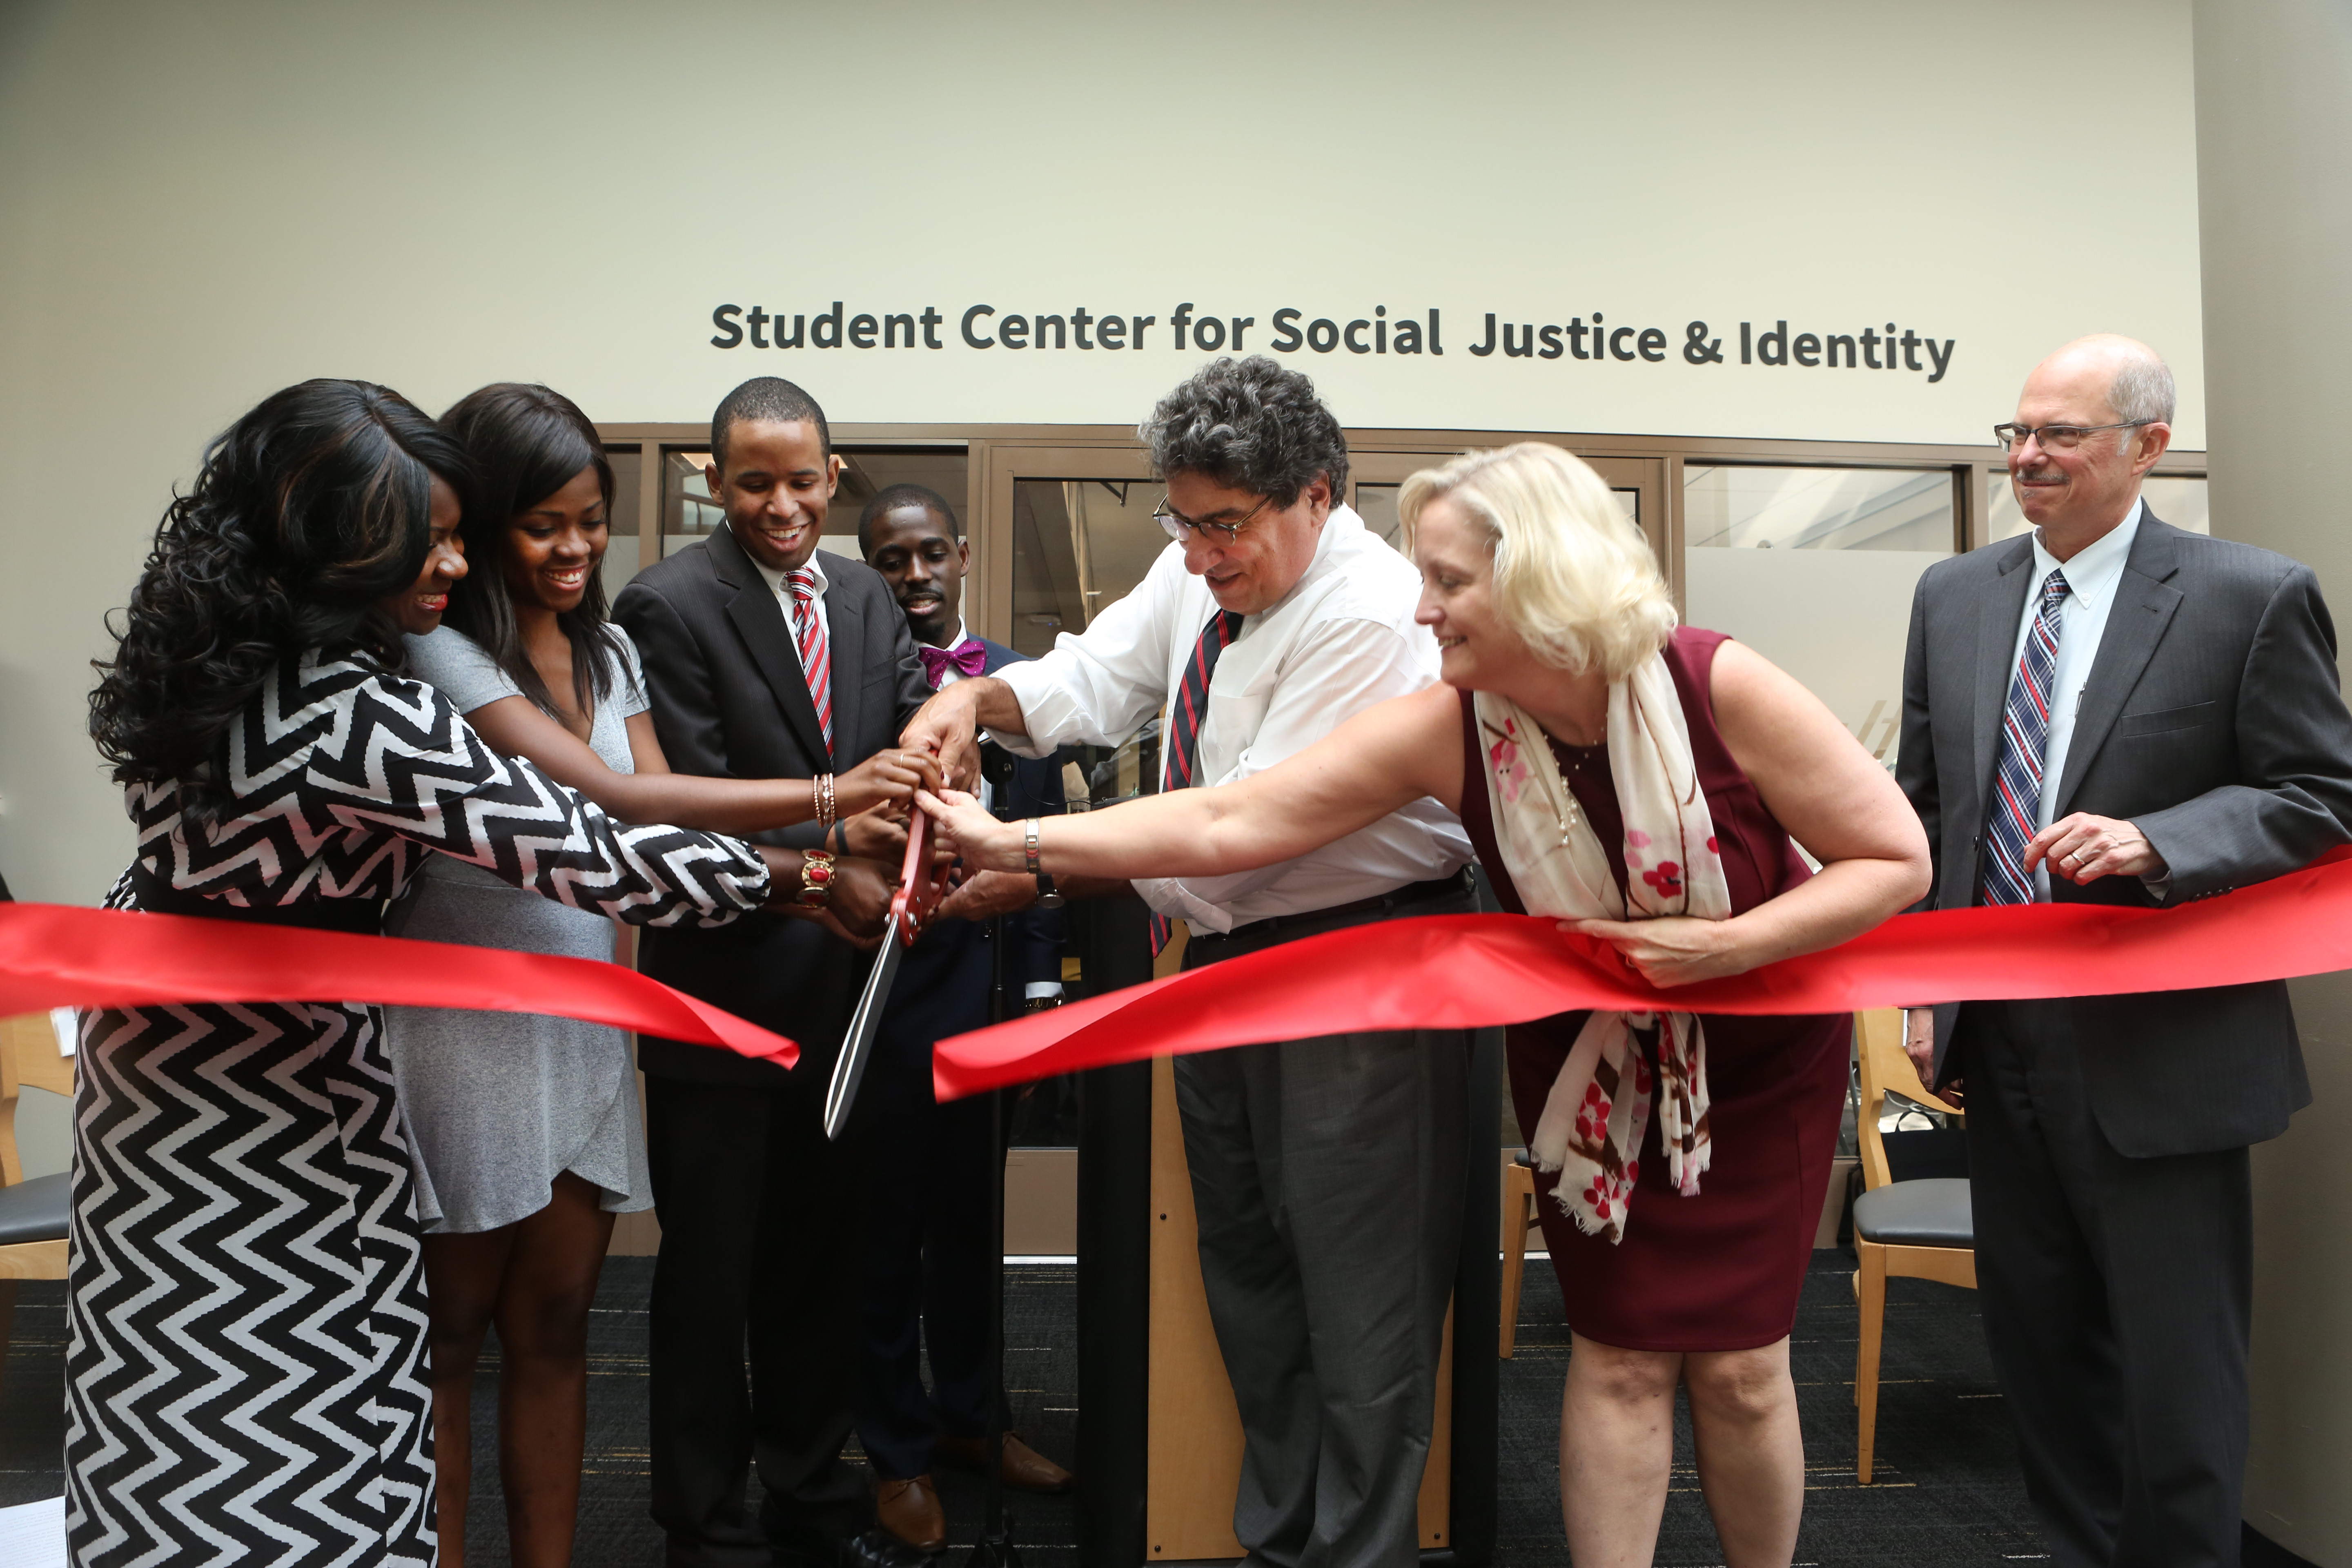 Ribbon cutting at the Grand Opening of the Student Center for Social Justice & Identity.